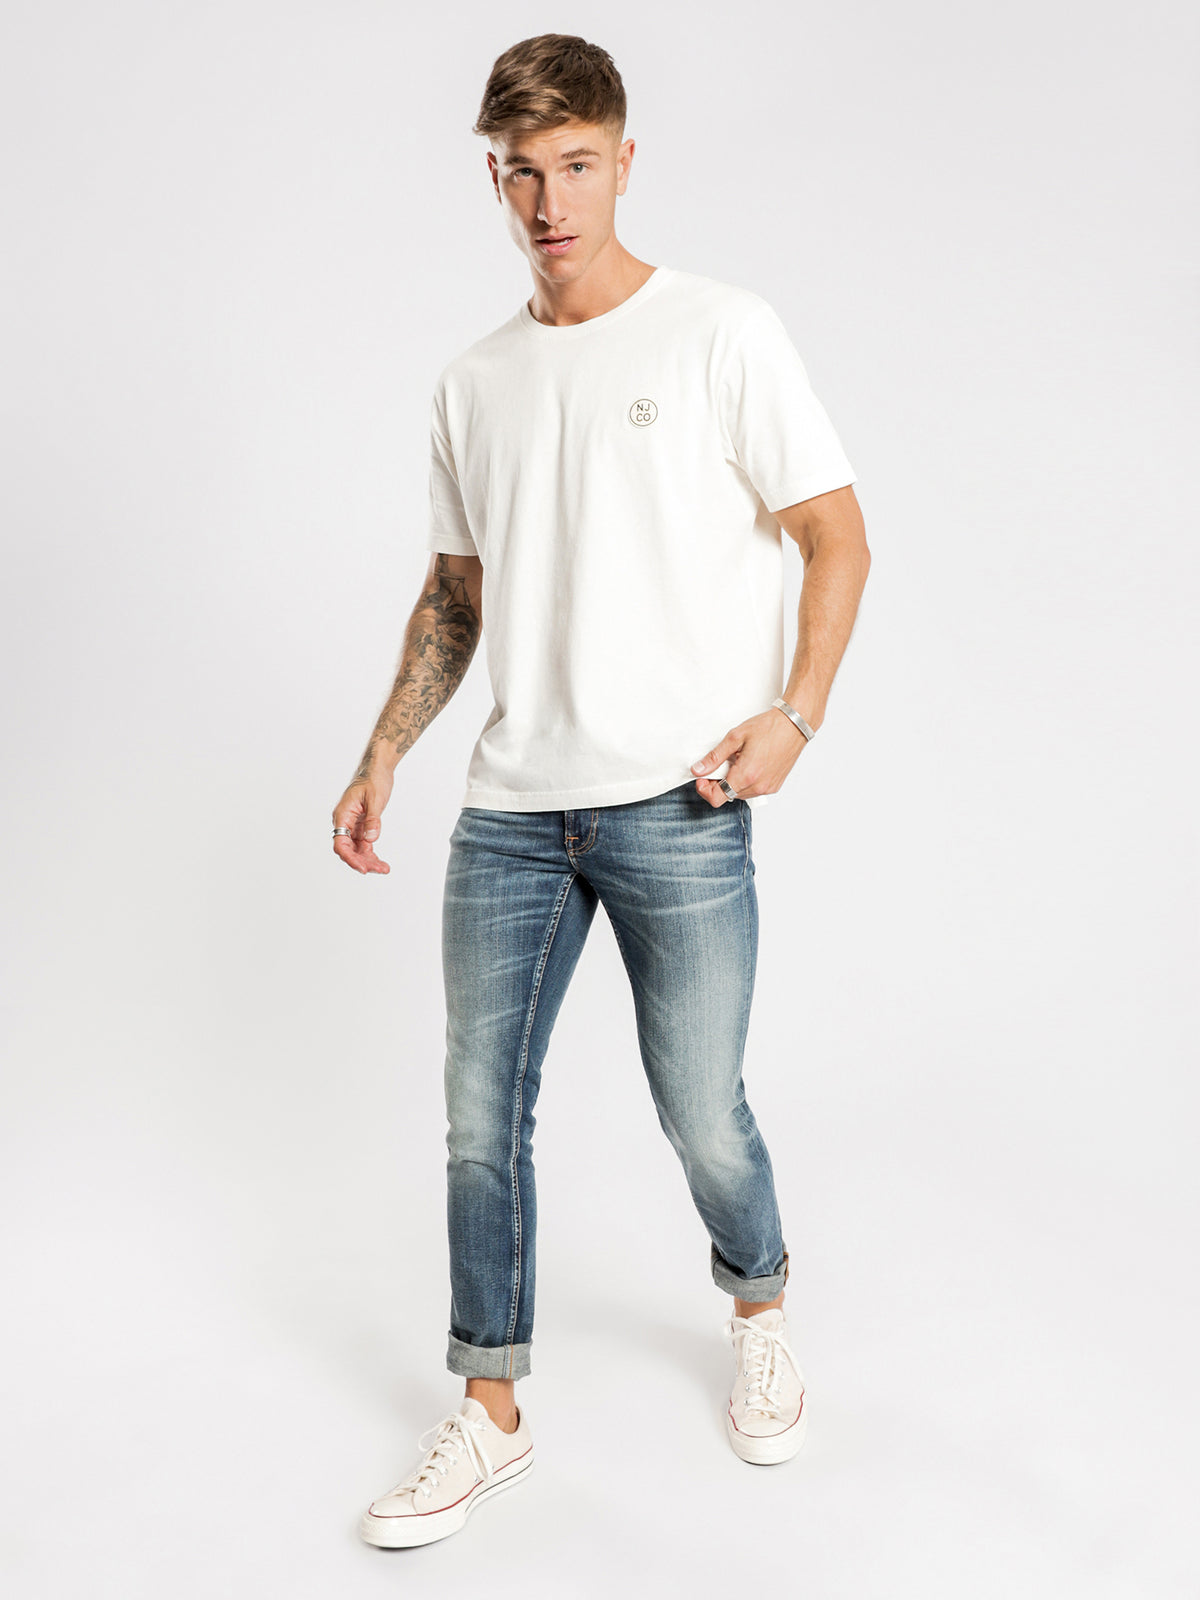 Uno Njco Circle T-Shirt in Dusty White